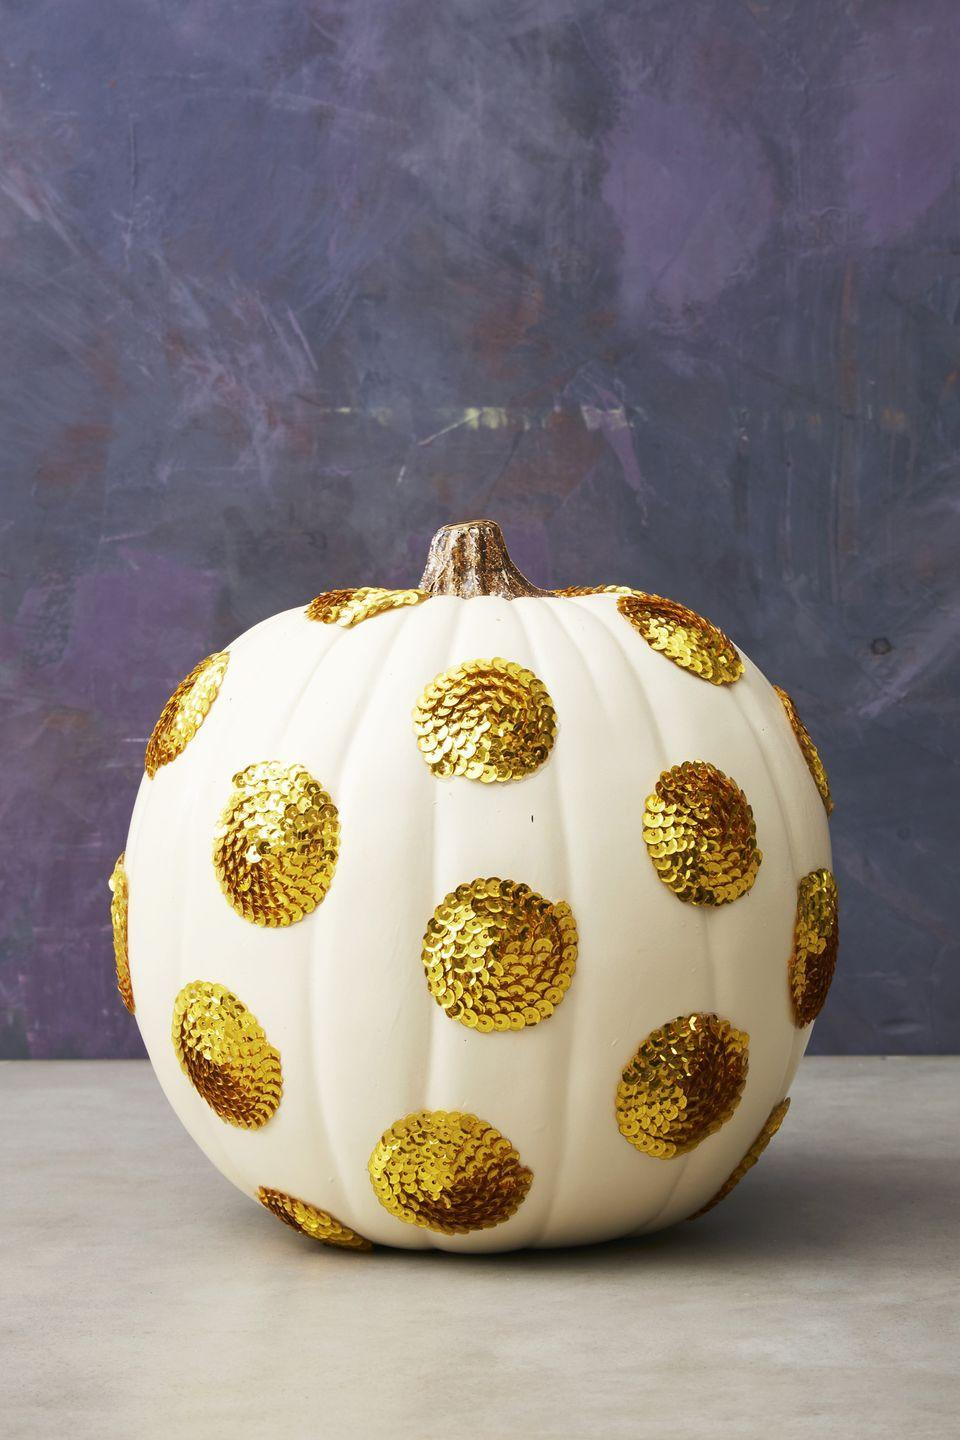 """<p>Add some sparkle to your front porch with these ultra-glam pumpkins. To make, glue 1- to 2-inch sequin circles on the pumpkin and repeat until the pumpkin is glitzy enough for your taste.</p><p> <a class=""""link rapid-noclick-resp"""" href=""""https://www.amazon.com/PH-PandaHall-100yards-Paillette-Embellish/dp/B07NC5XYFC/?tag=syn-yahoo-20&ascsubtag=%5Bartid%7C10055.g.2592%5Bsrc%7Cyahoo-us"""" rel=""""nofollow noopener"""" target=""""_blank"""" data-ylk=""""slk:SHOP SEQUINS"""">SHOP SEQUINS</a></p>"""